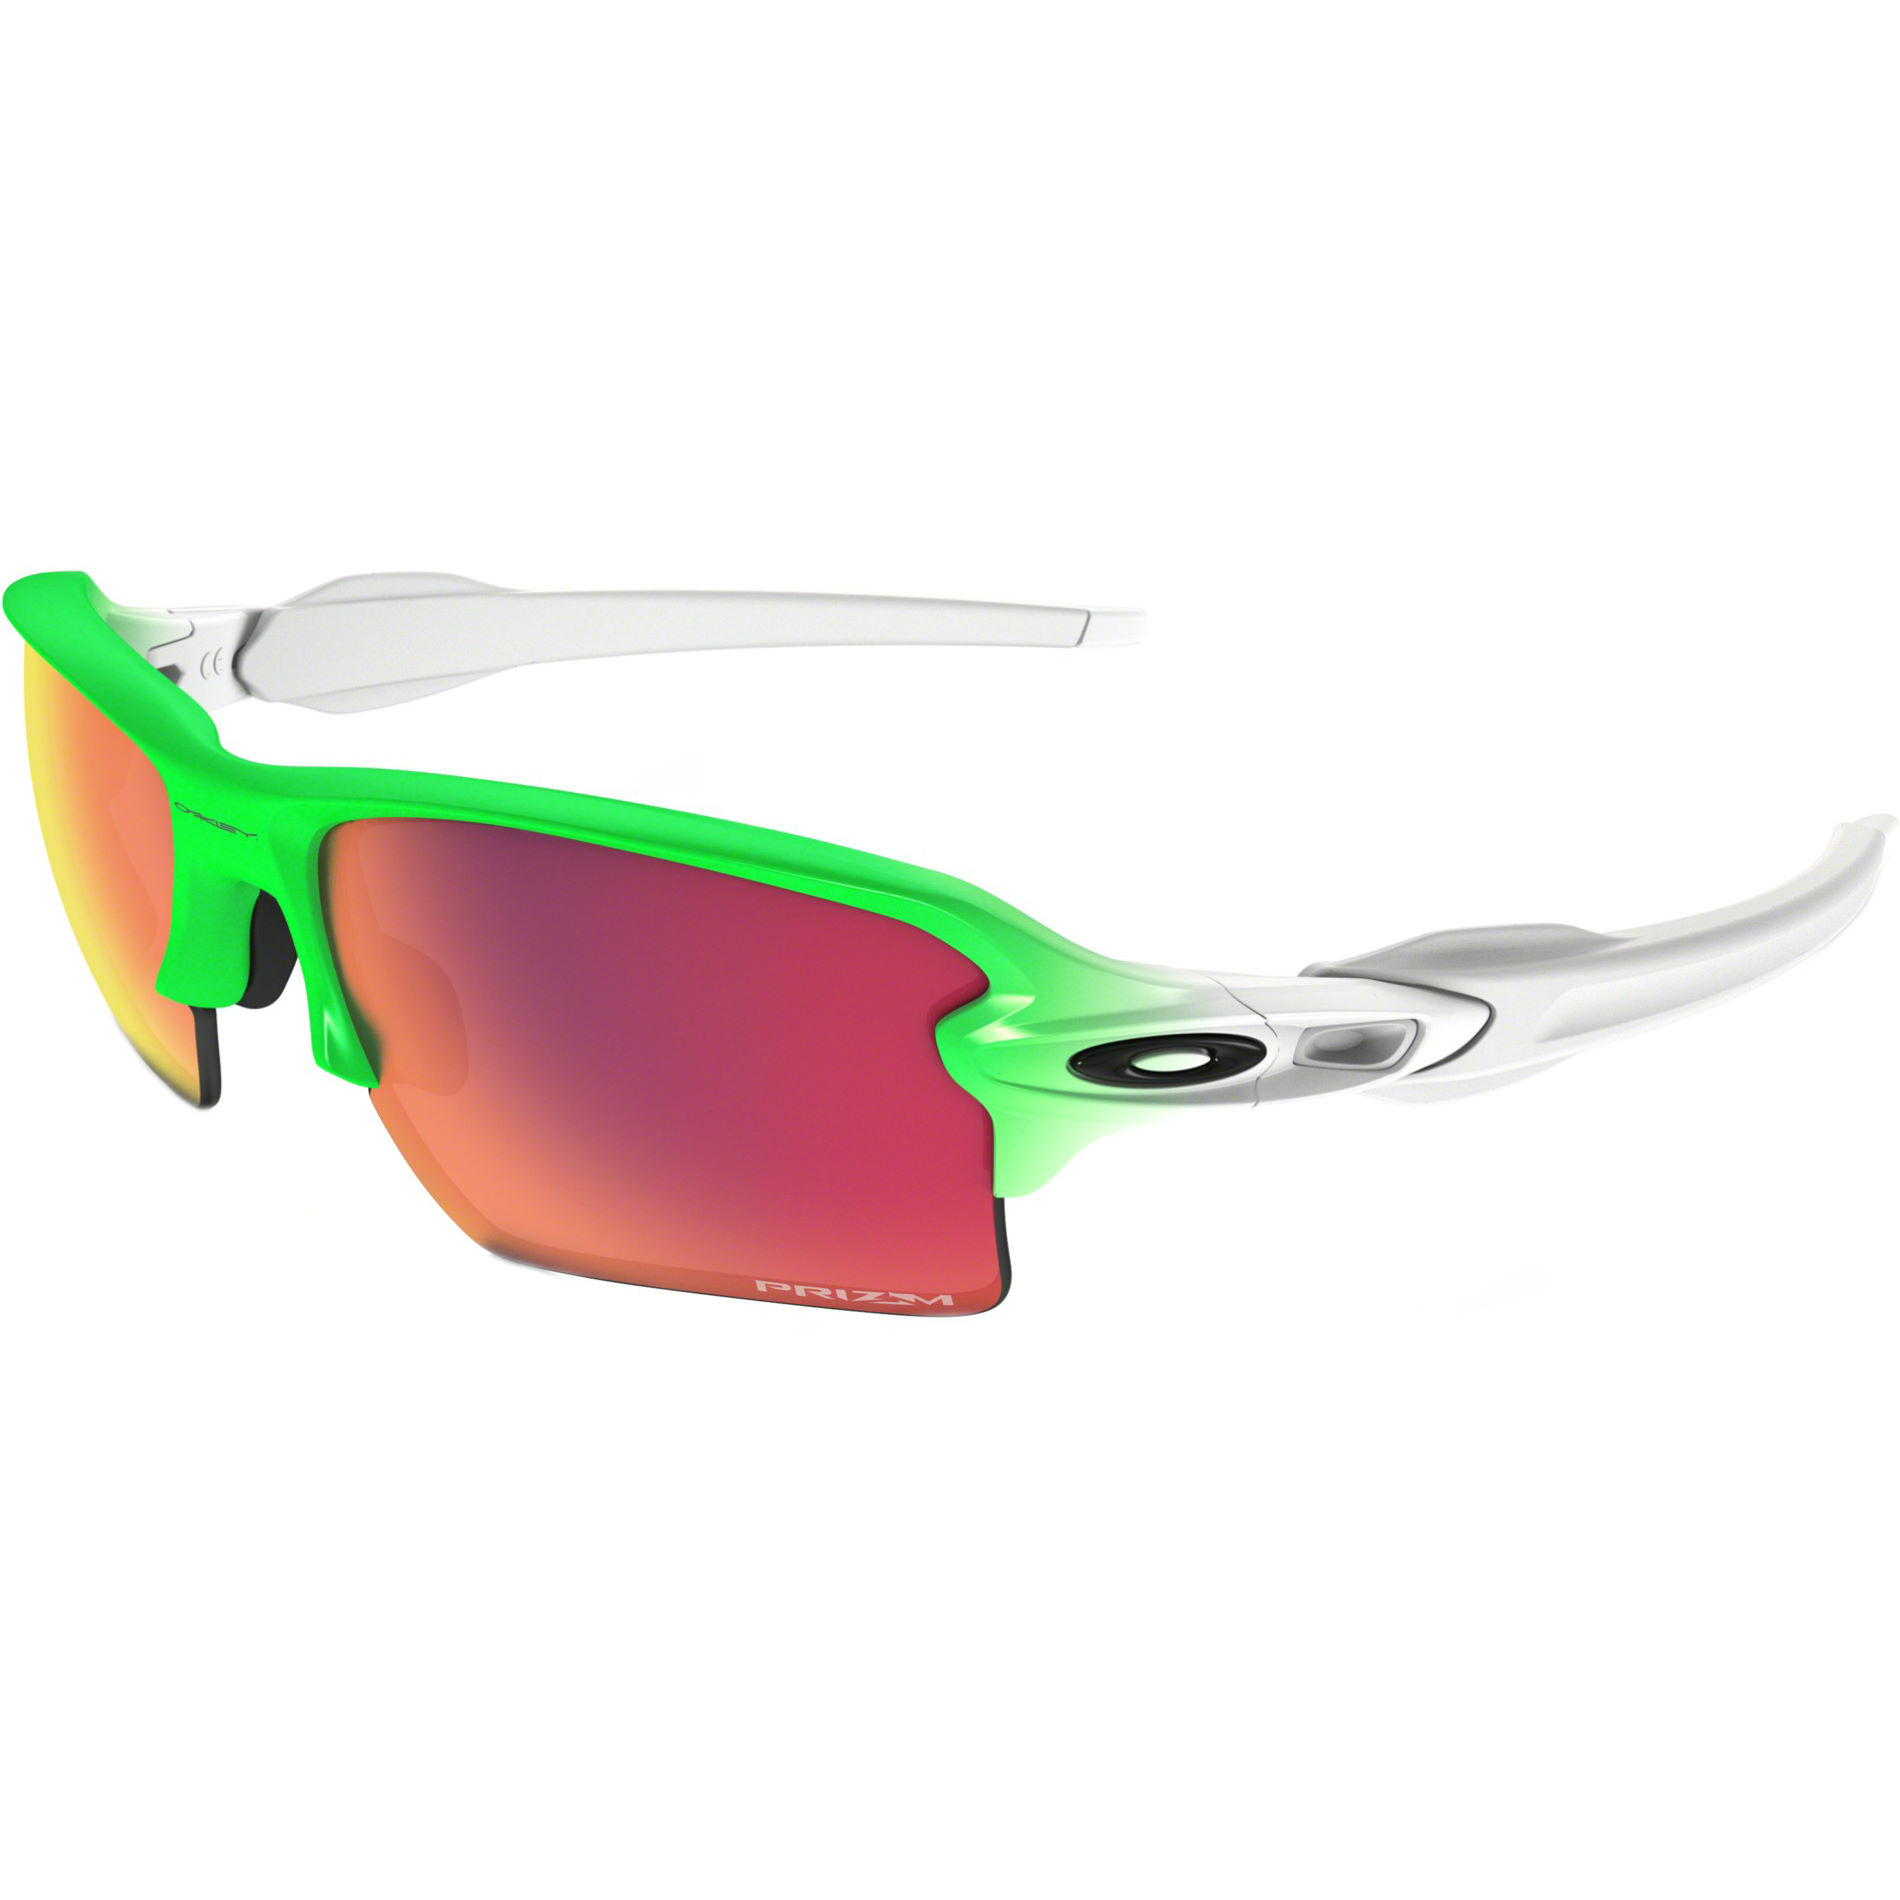 3eae8a0c3 Green Oakley Goggles Olympic Games | www.tapdance.org